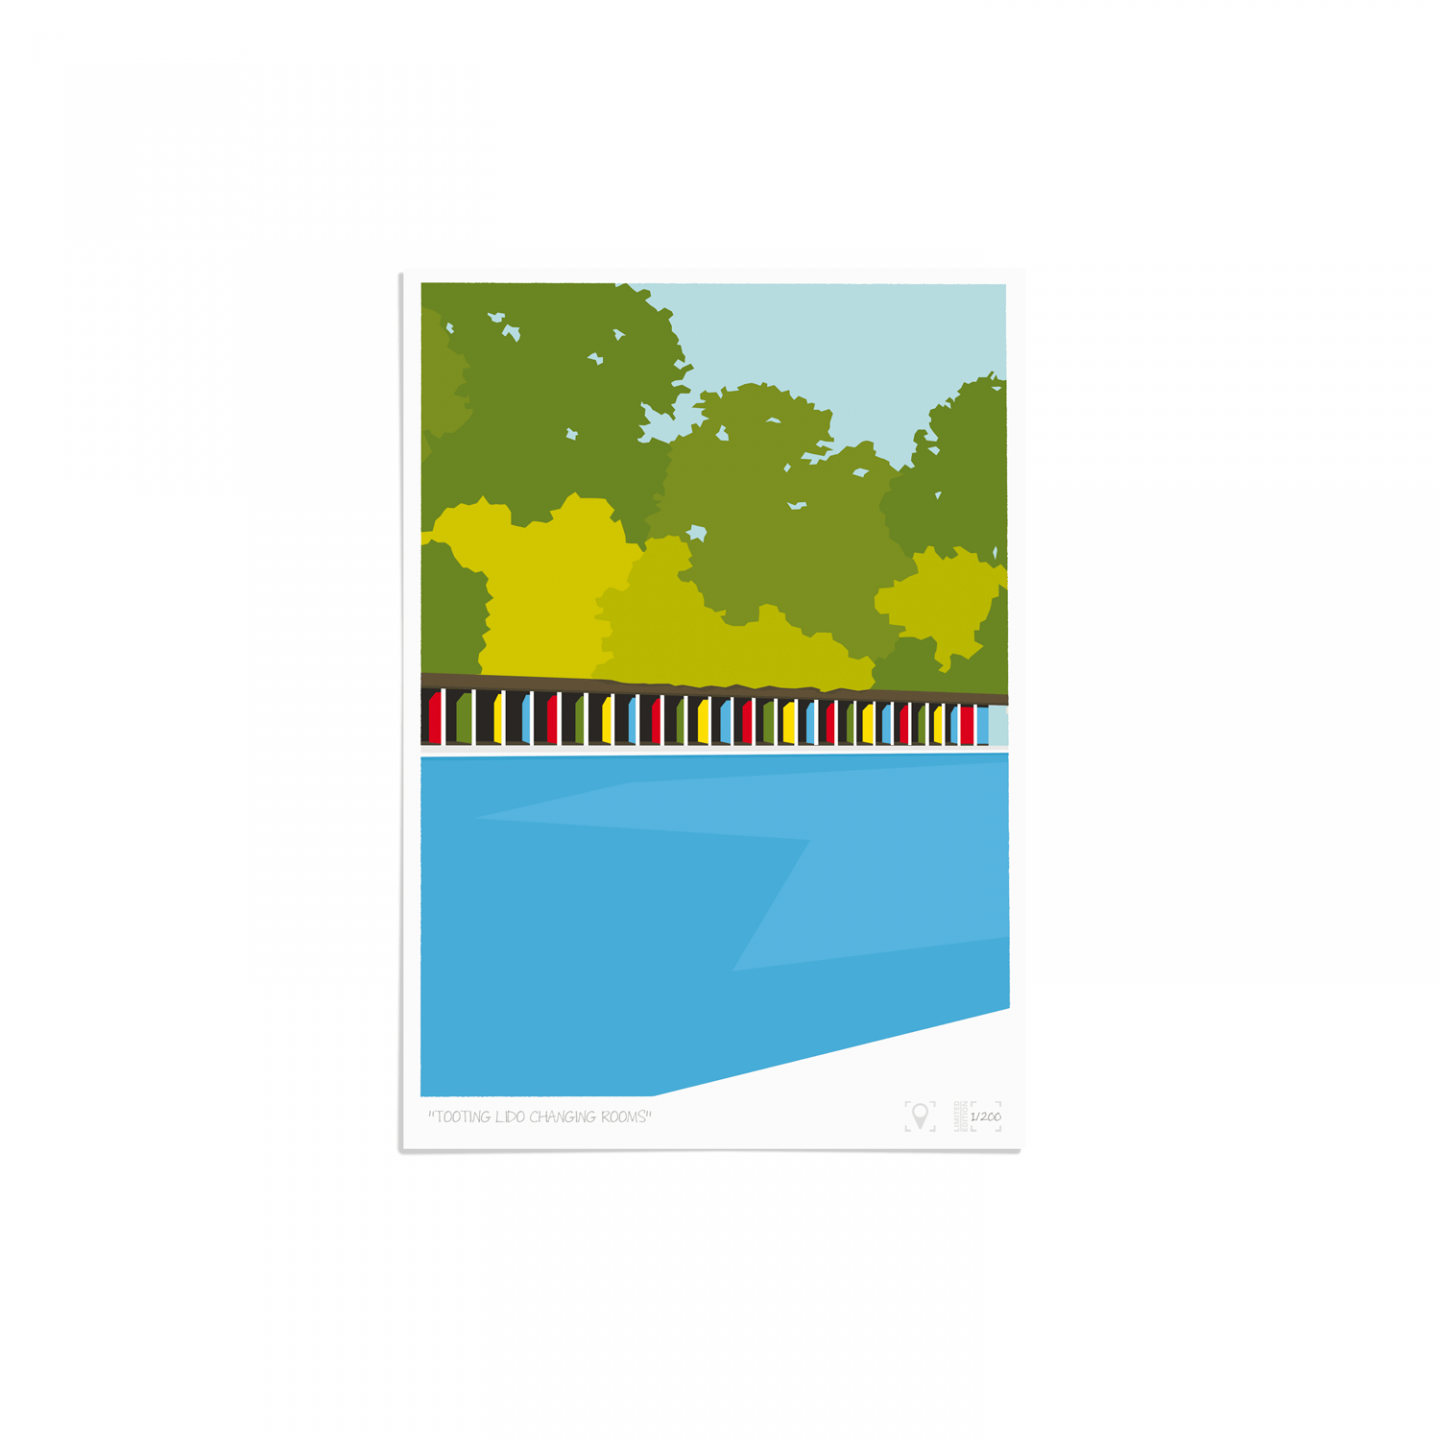 Place in Print Tooting Bec Lido Changing Rooms Art Print Unframed